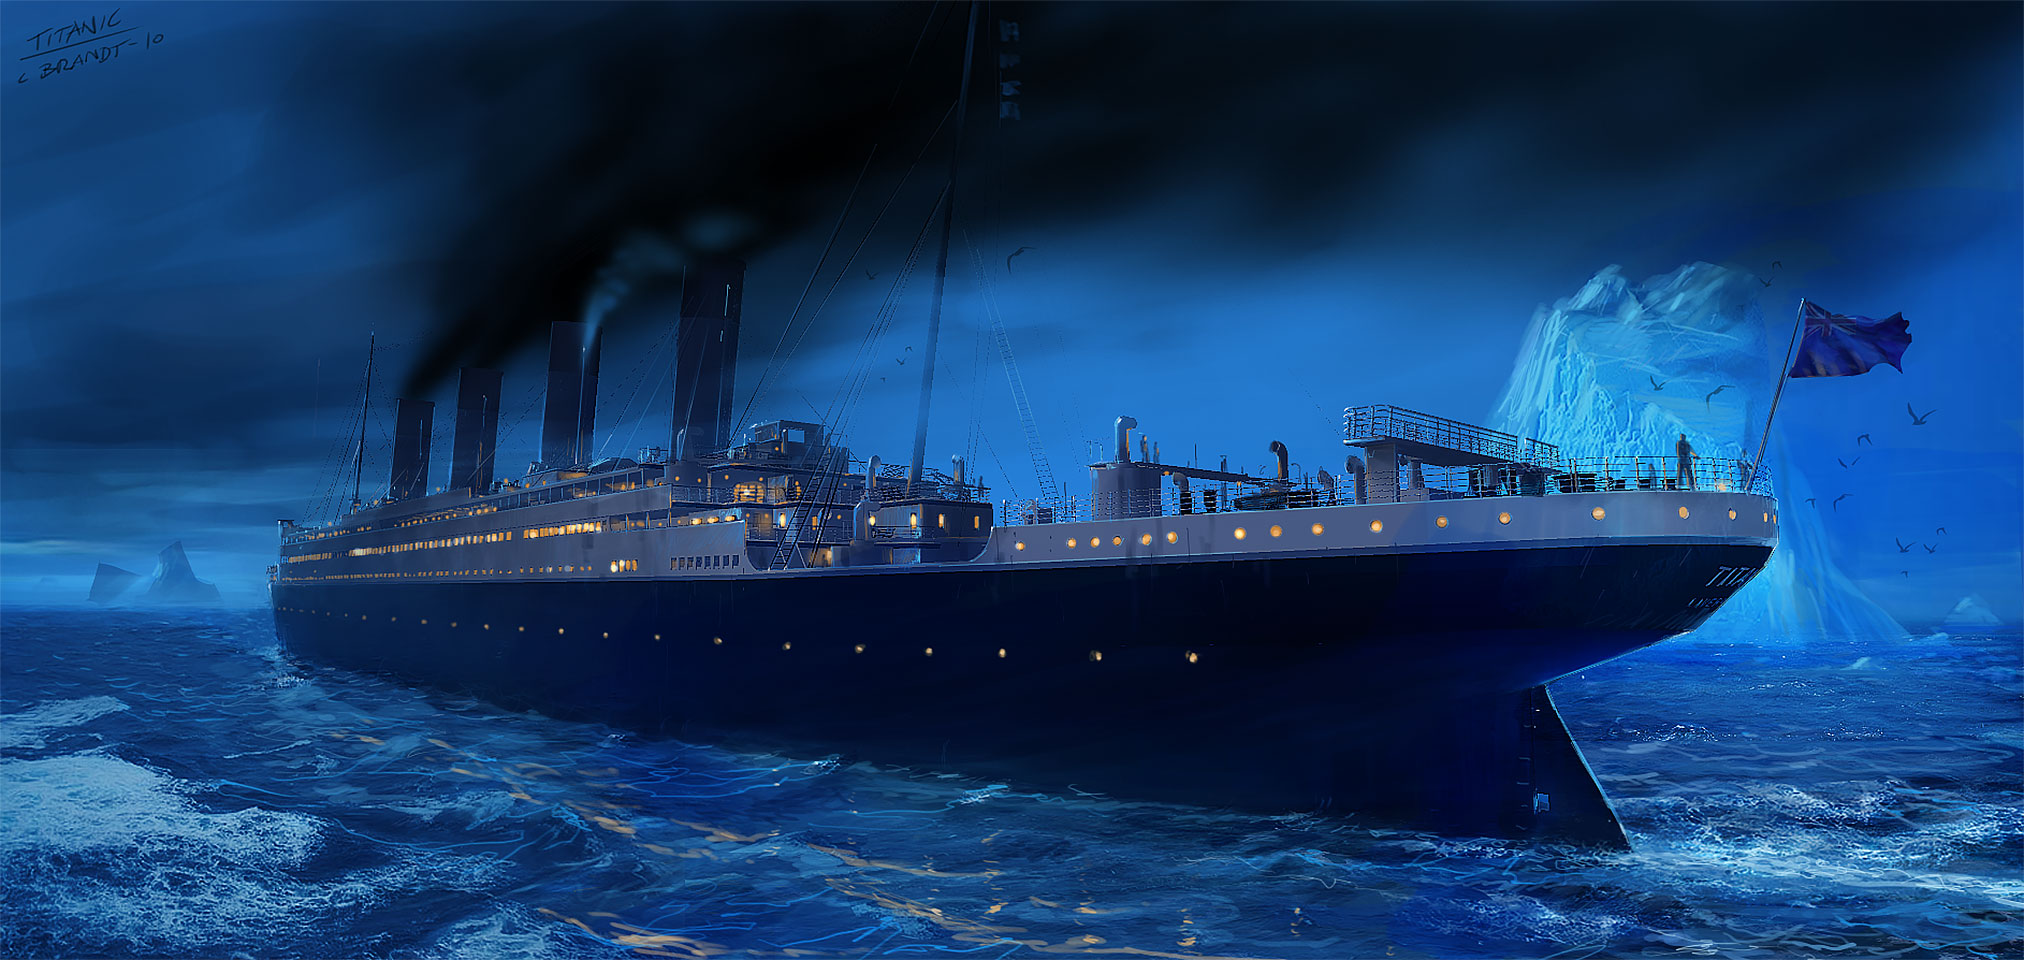 Titanic - Iceberg right ahead! - Concept painting, Photoshop.